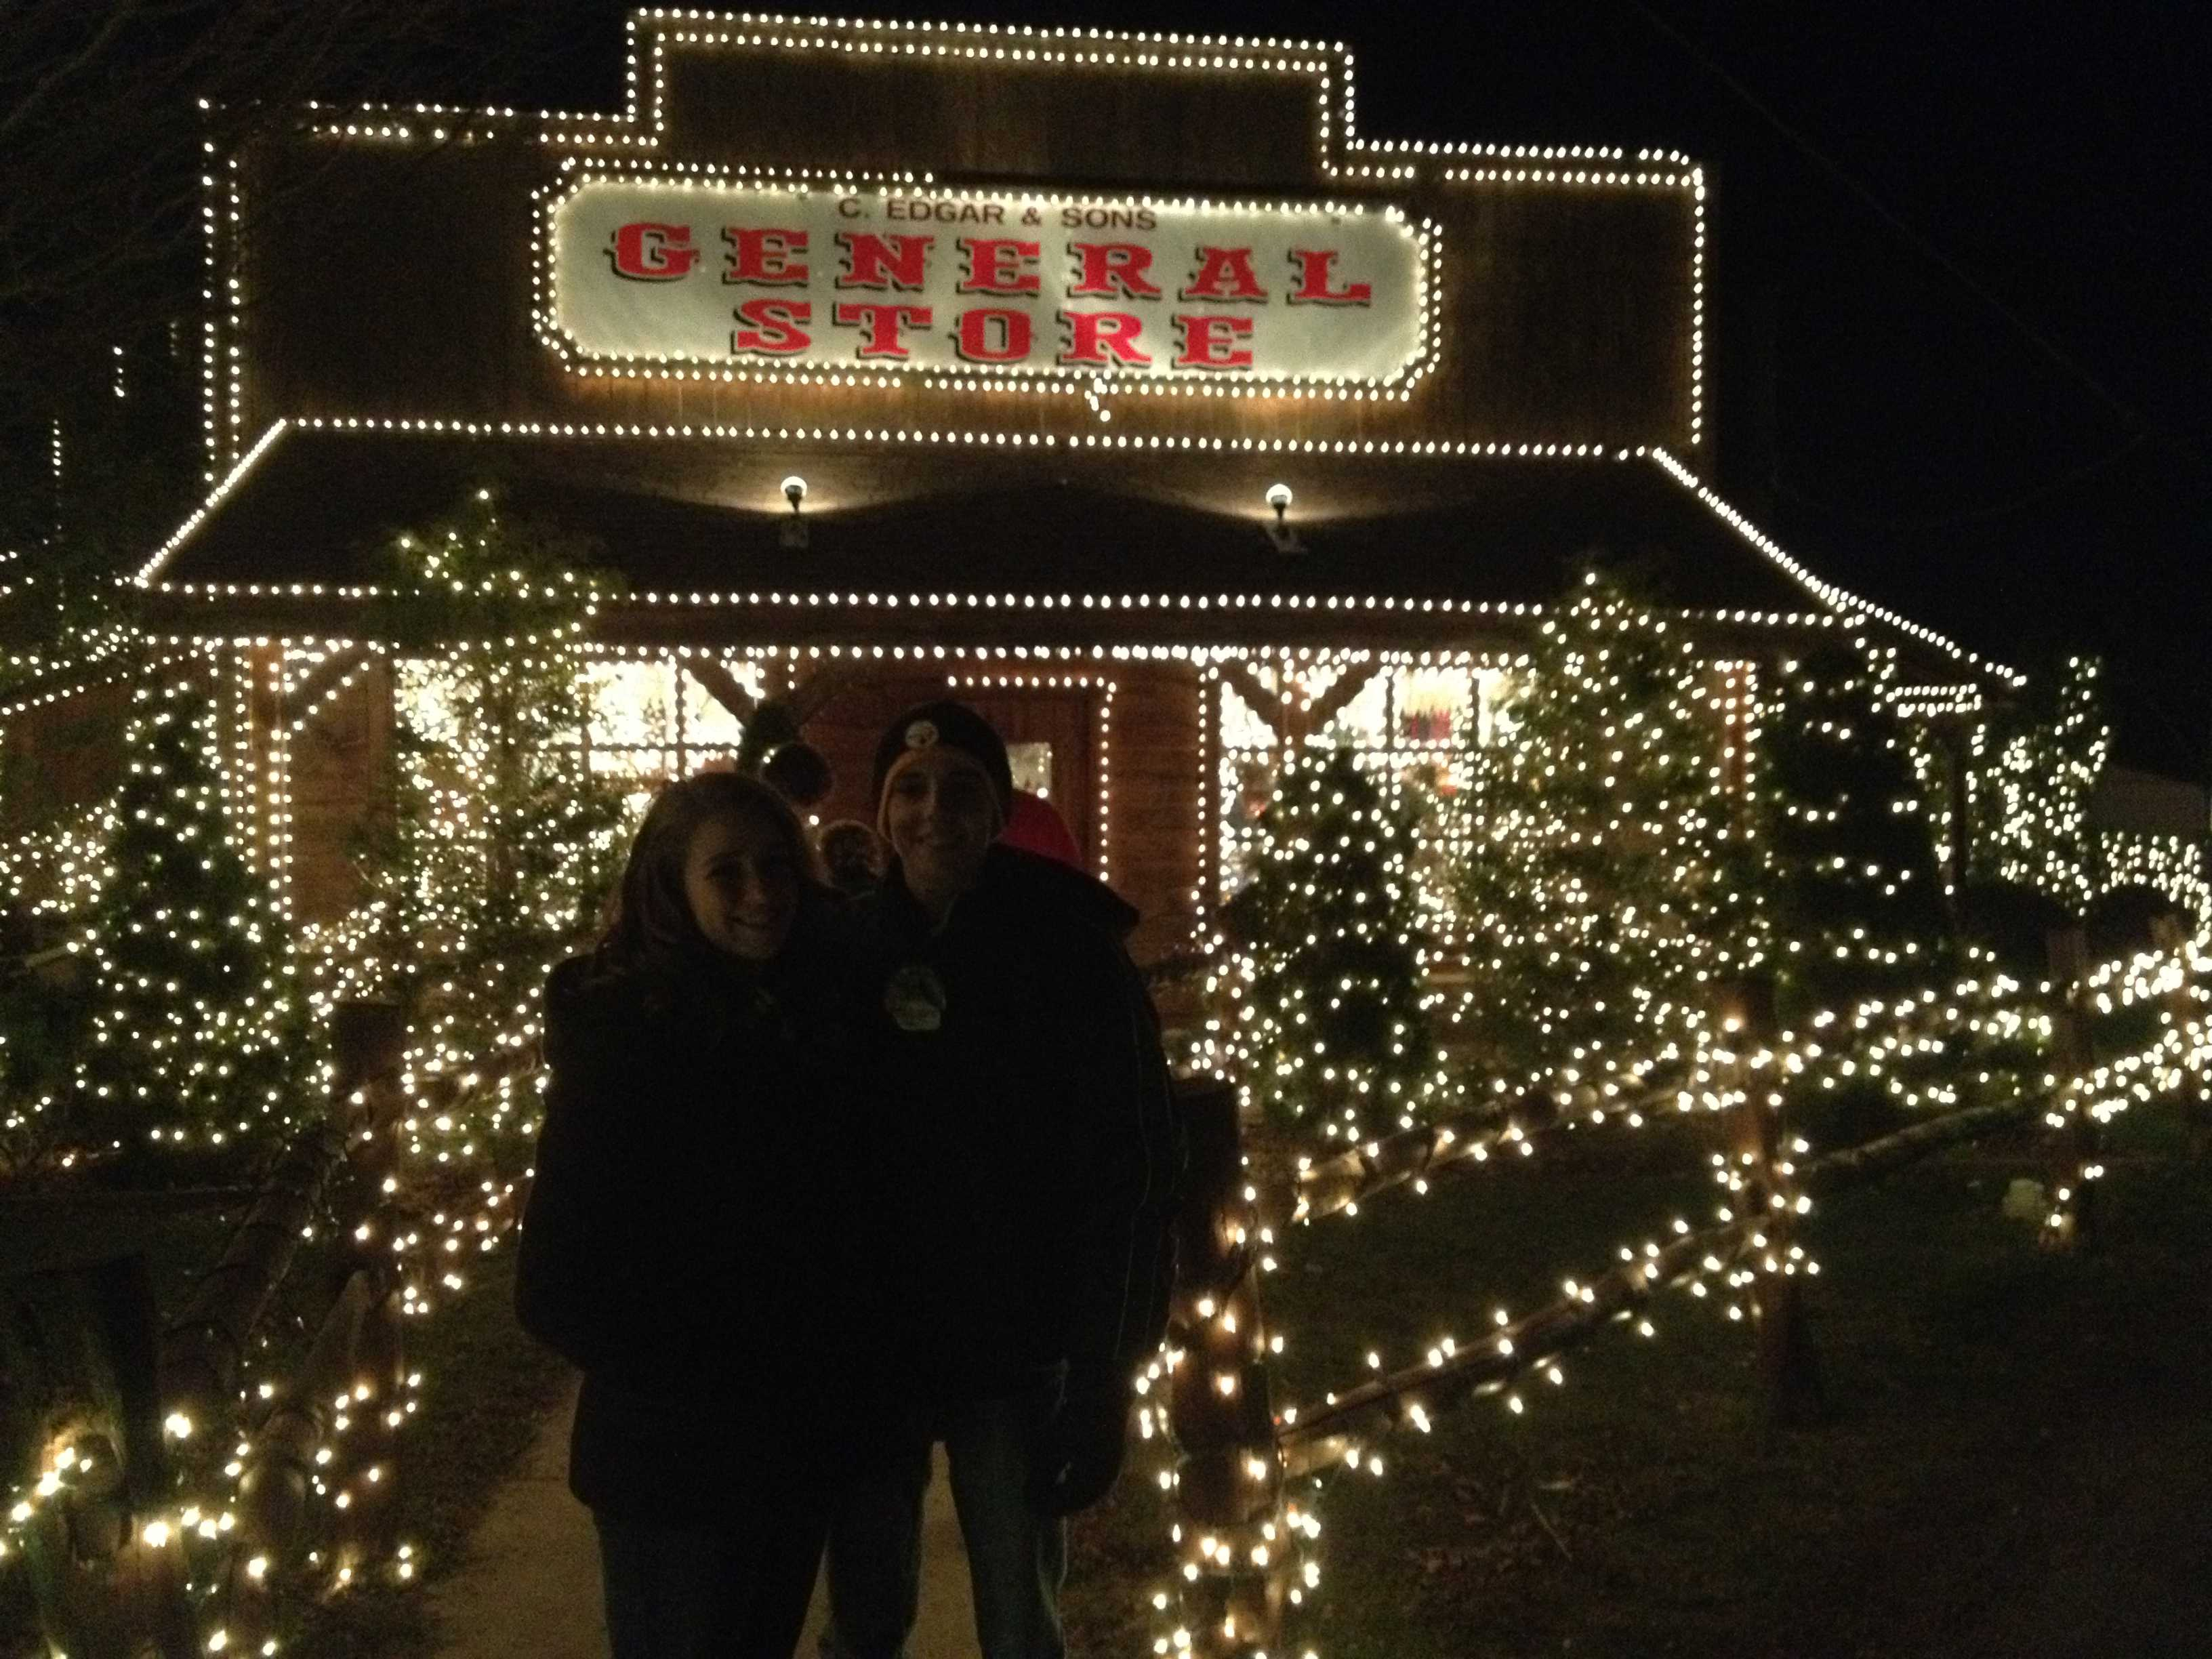 Overlys Country Christmas.An Evening At Overly S Country Christmas The High Post